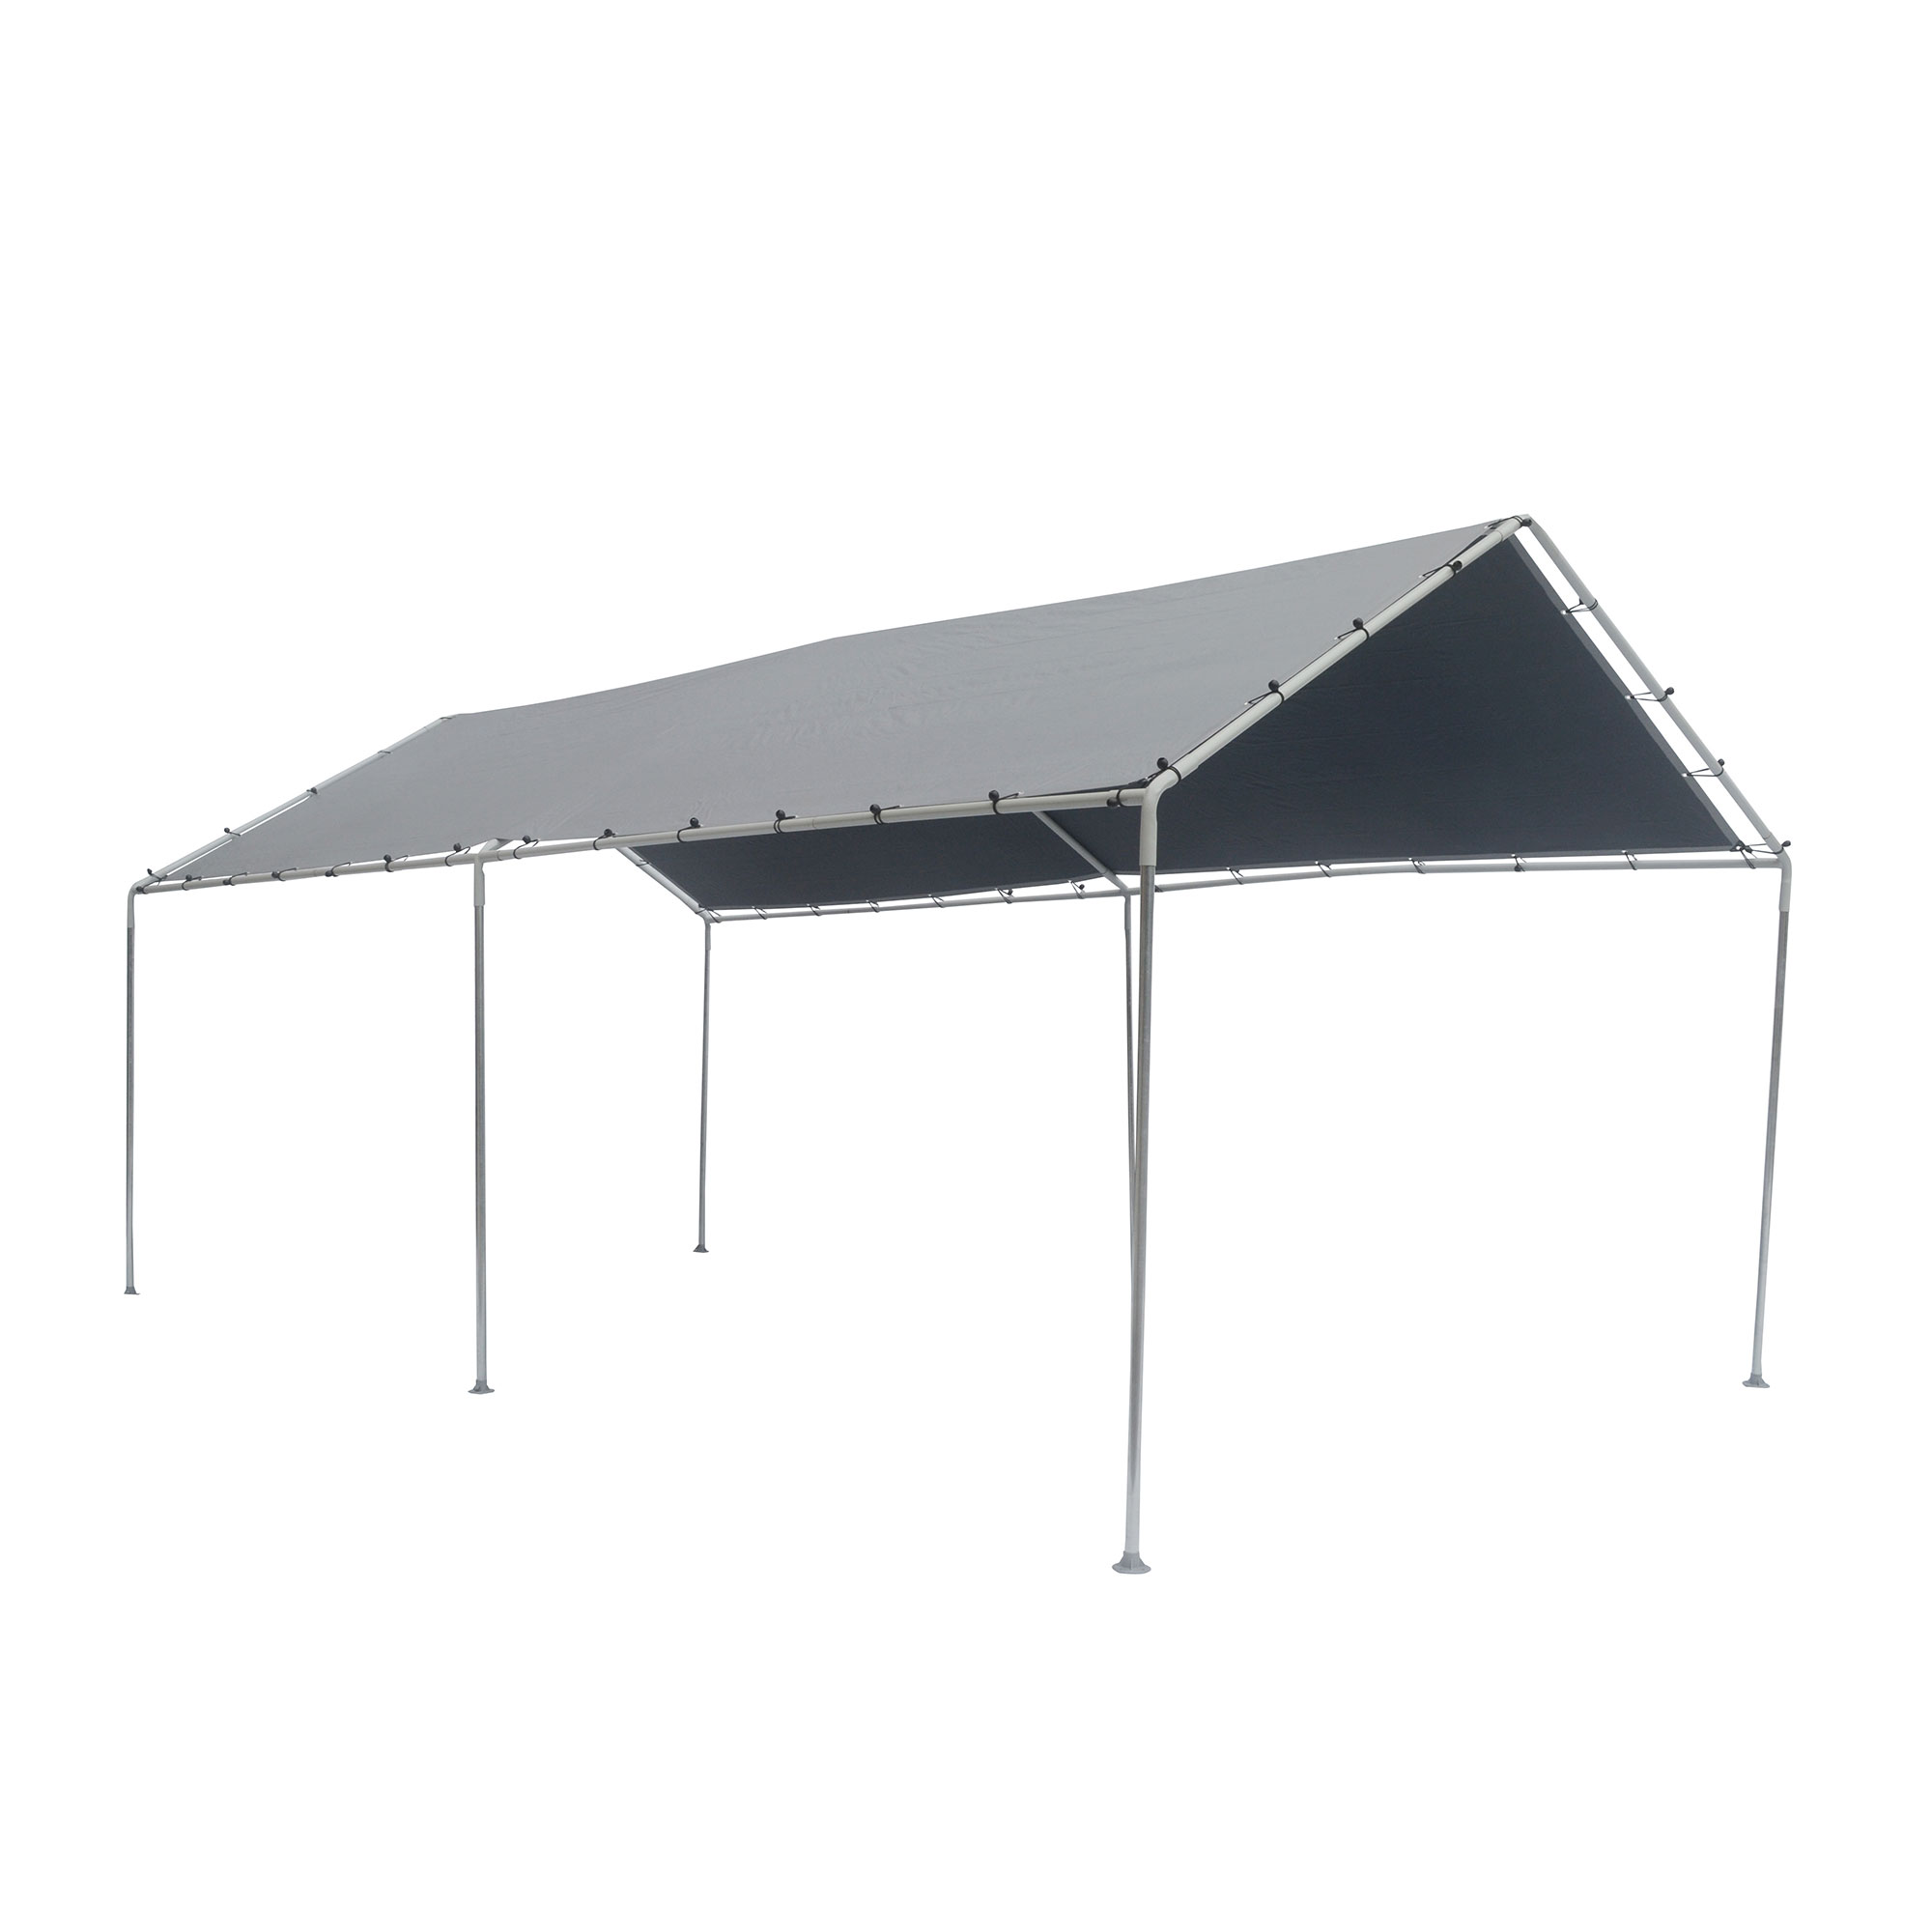 10 x 20 ft Car Port Canopy Gazebo Tent Cover - 6 Leg Steel Frame ...